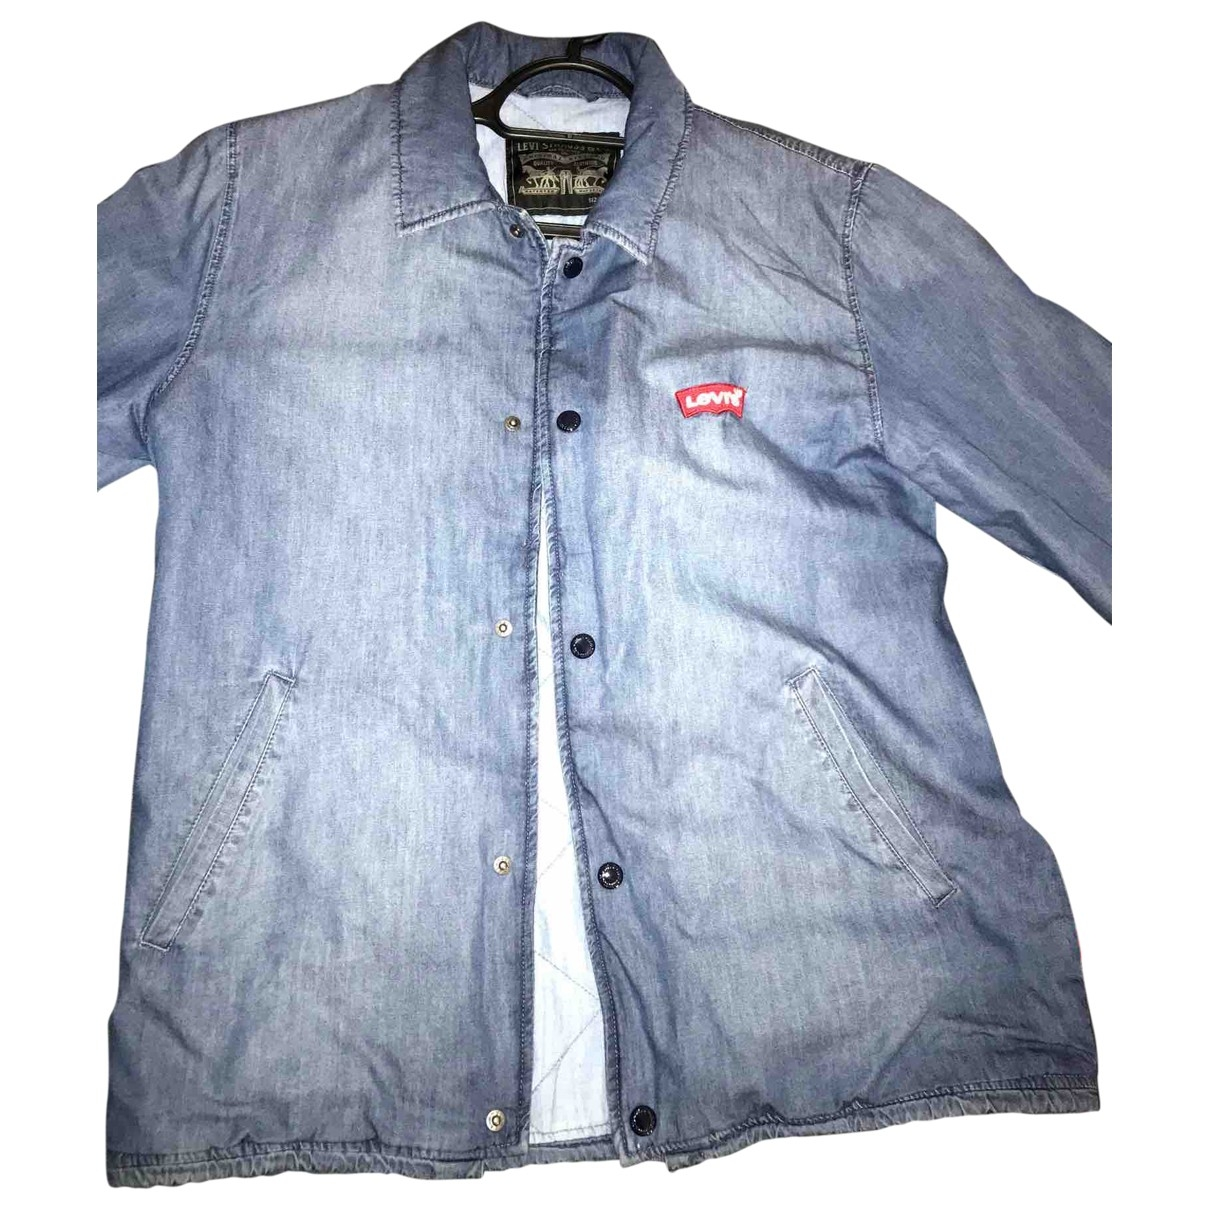 Levi's \N Blue Denim - Jeans jacket  for Men S International